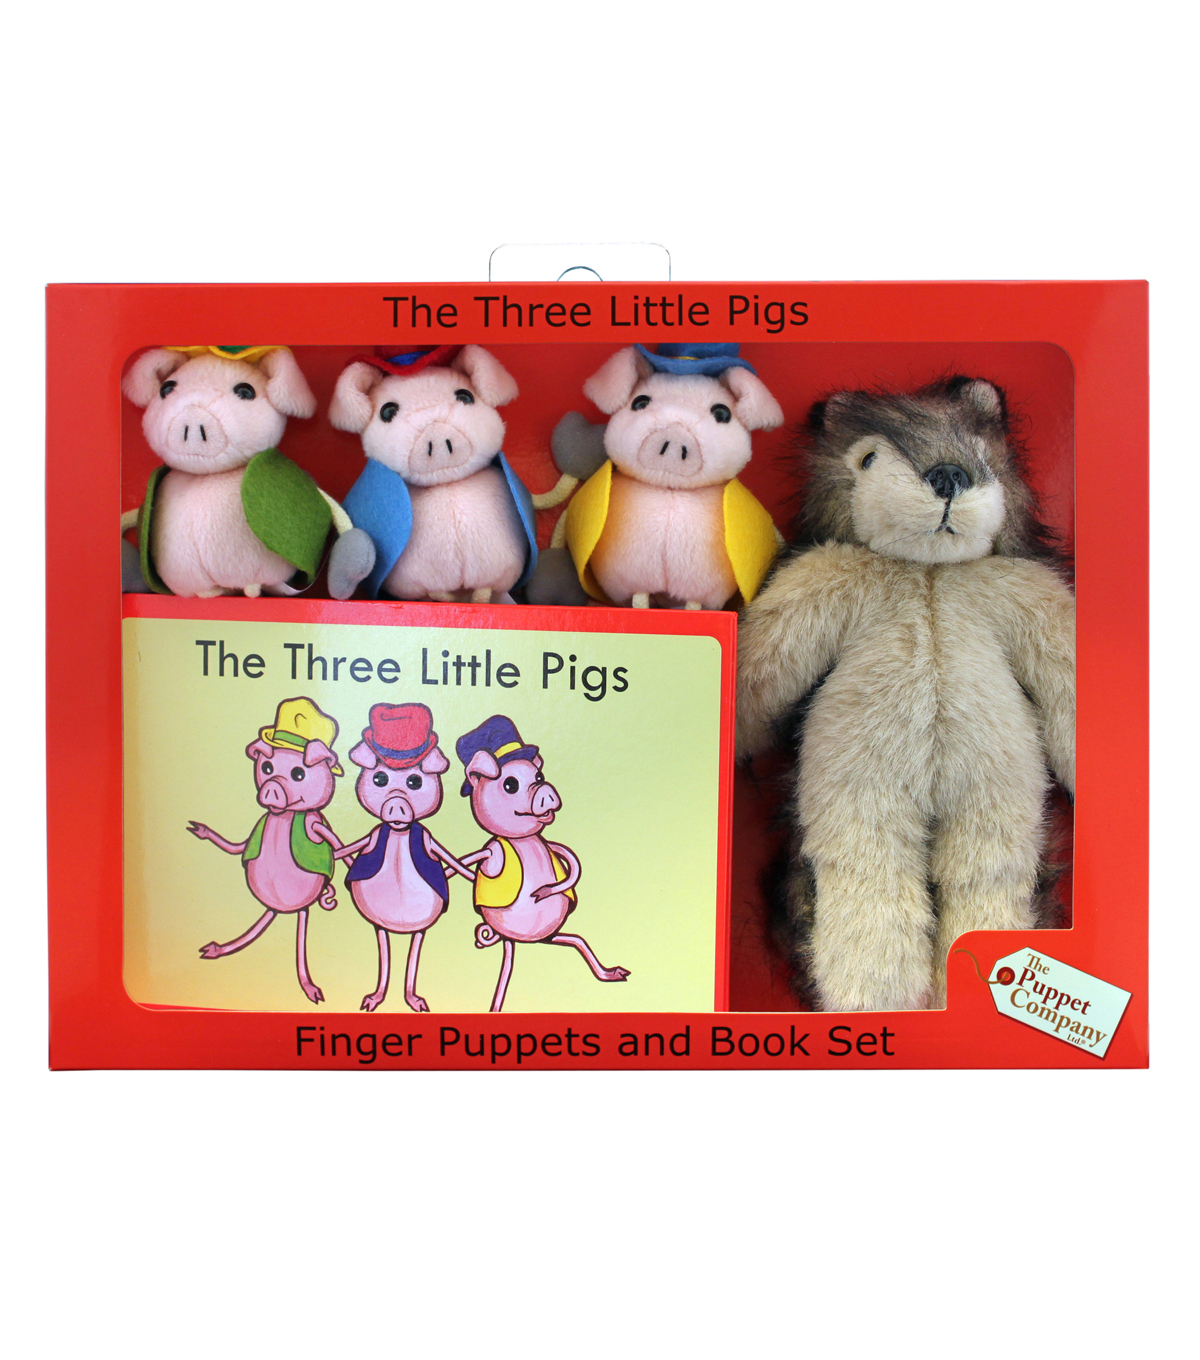 The Three Little Pigs Finger Puppets and Book Set